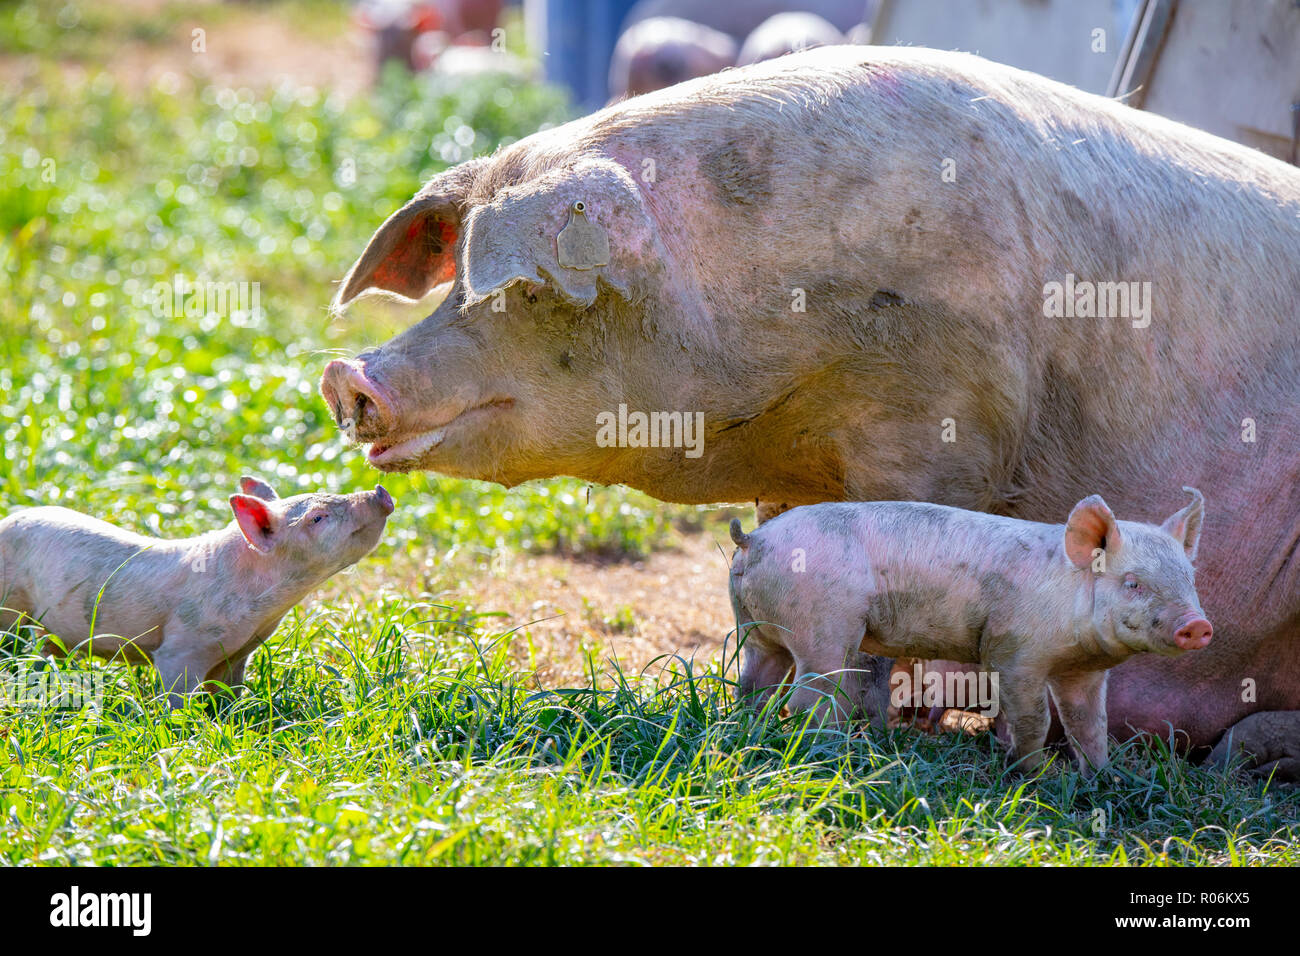 A baby piglet looks to his sow mum for comfort on a free range pig farm in New Zealand - Stock Image